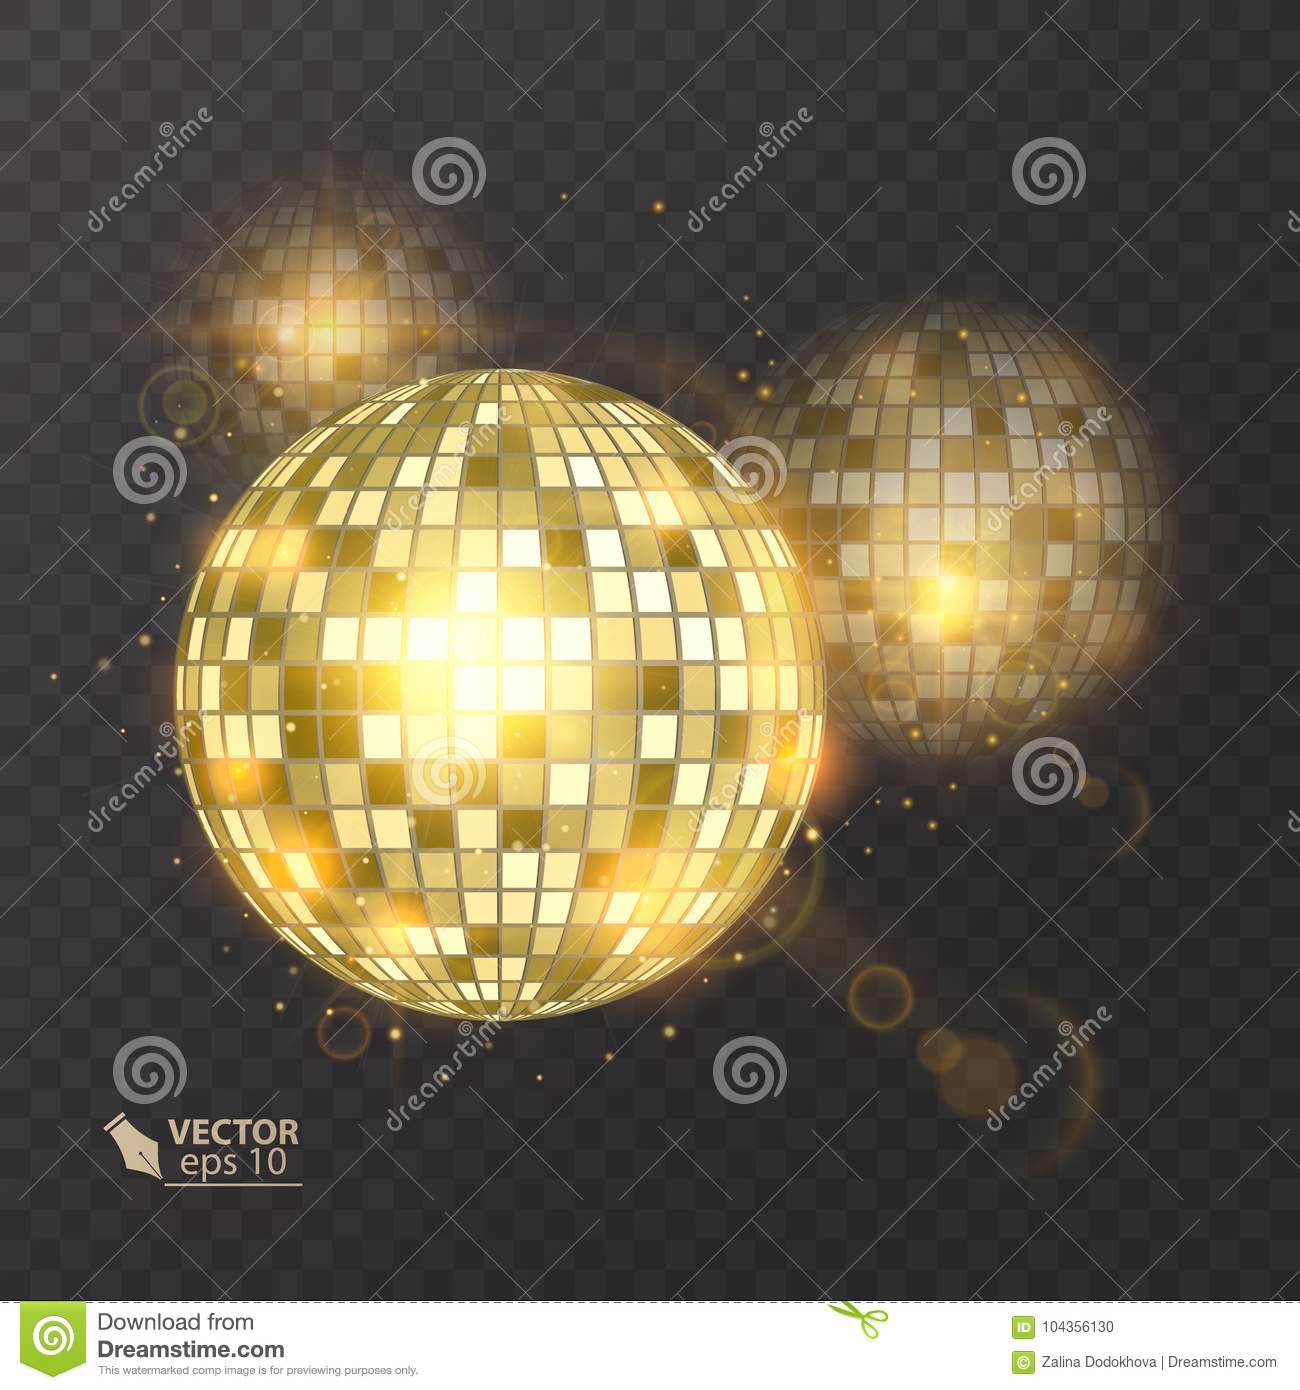 Disco ball on background. Night Club party light element. Bright mirror ball design for disco dance club